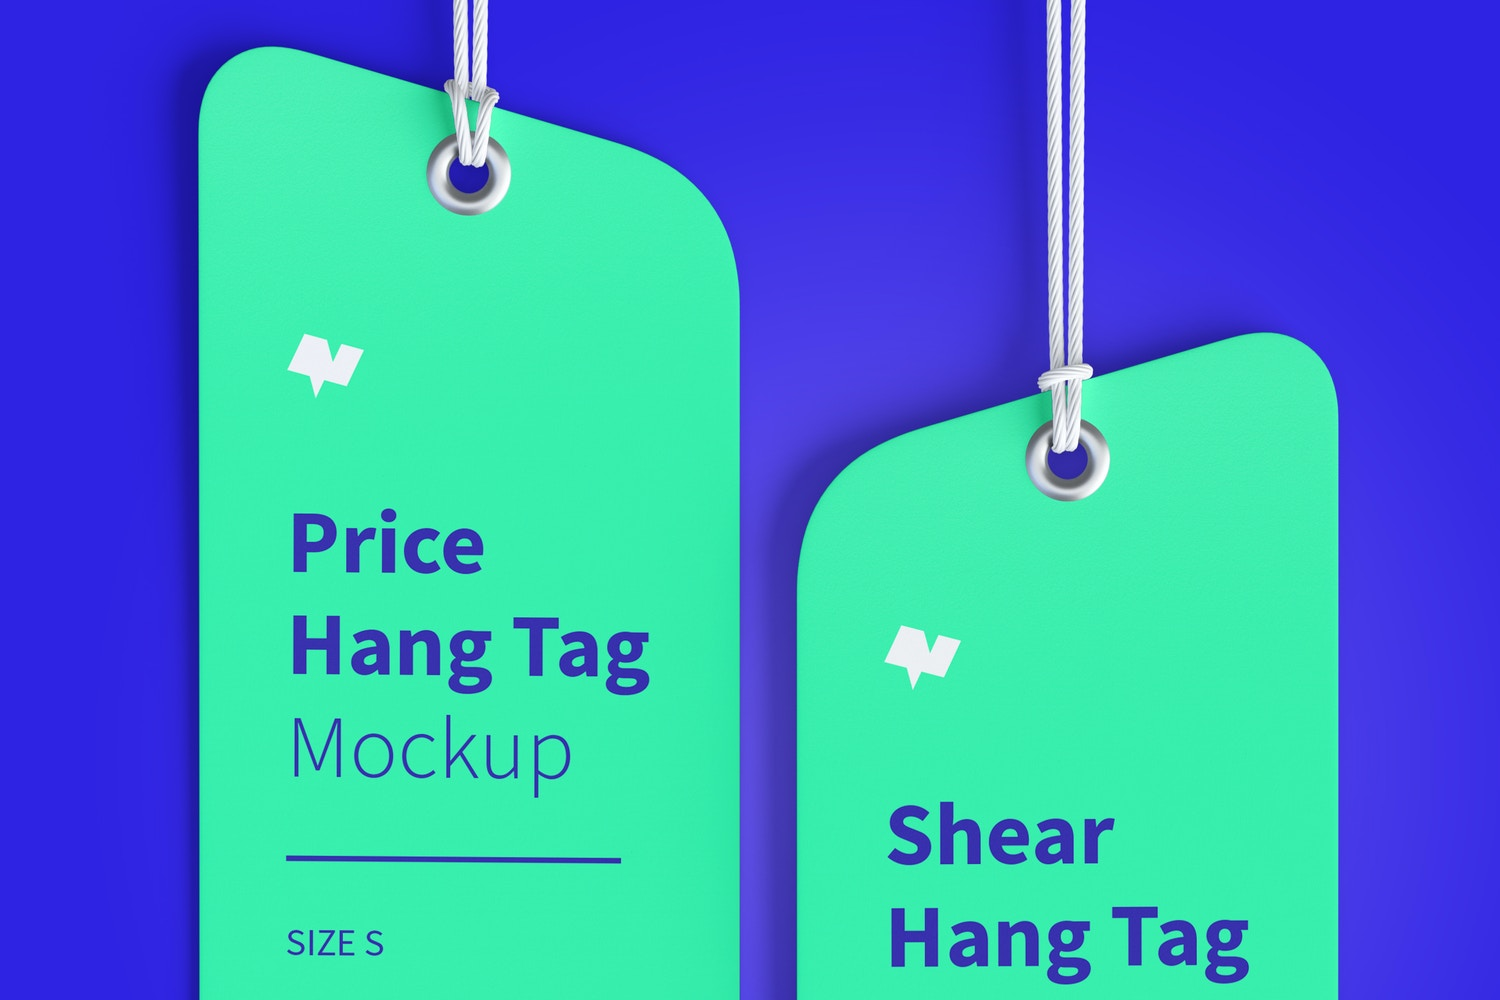 Price Hang Tags Mockup with String